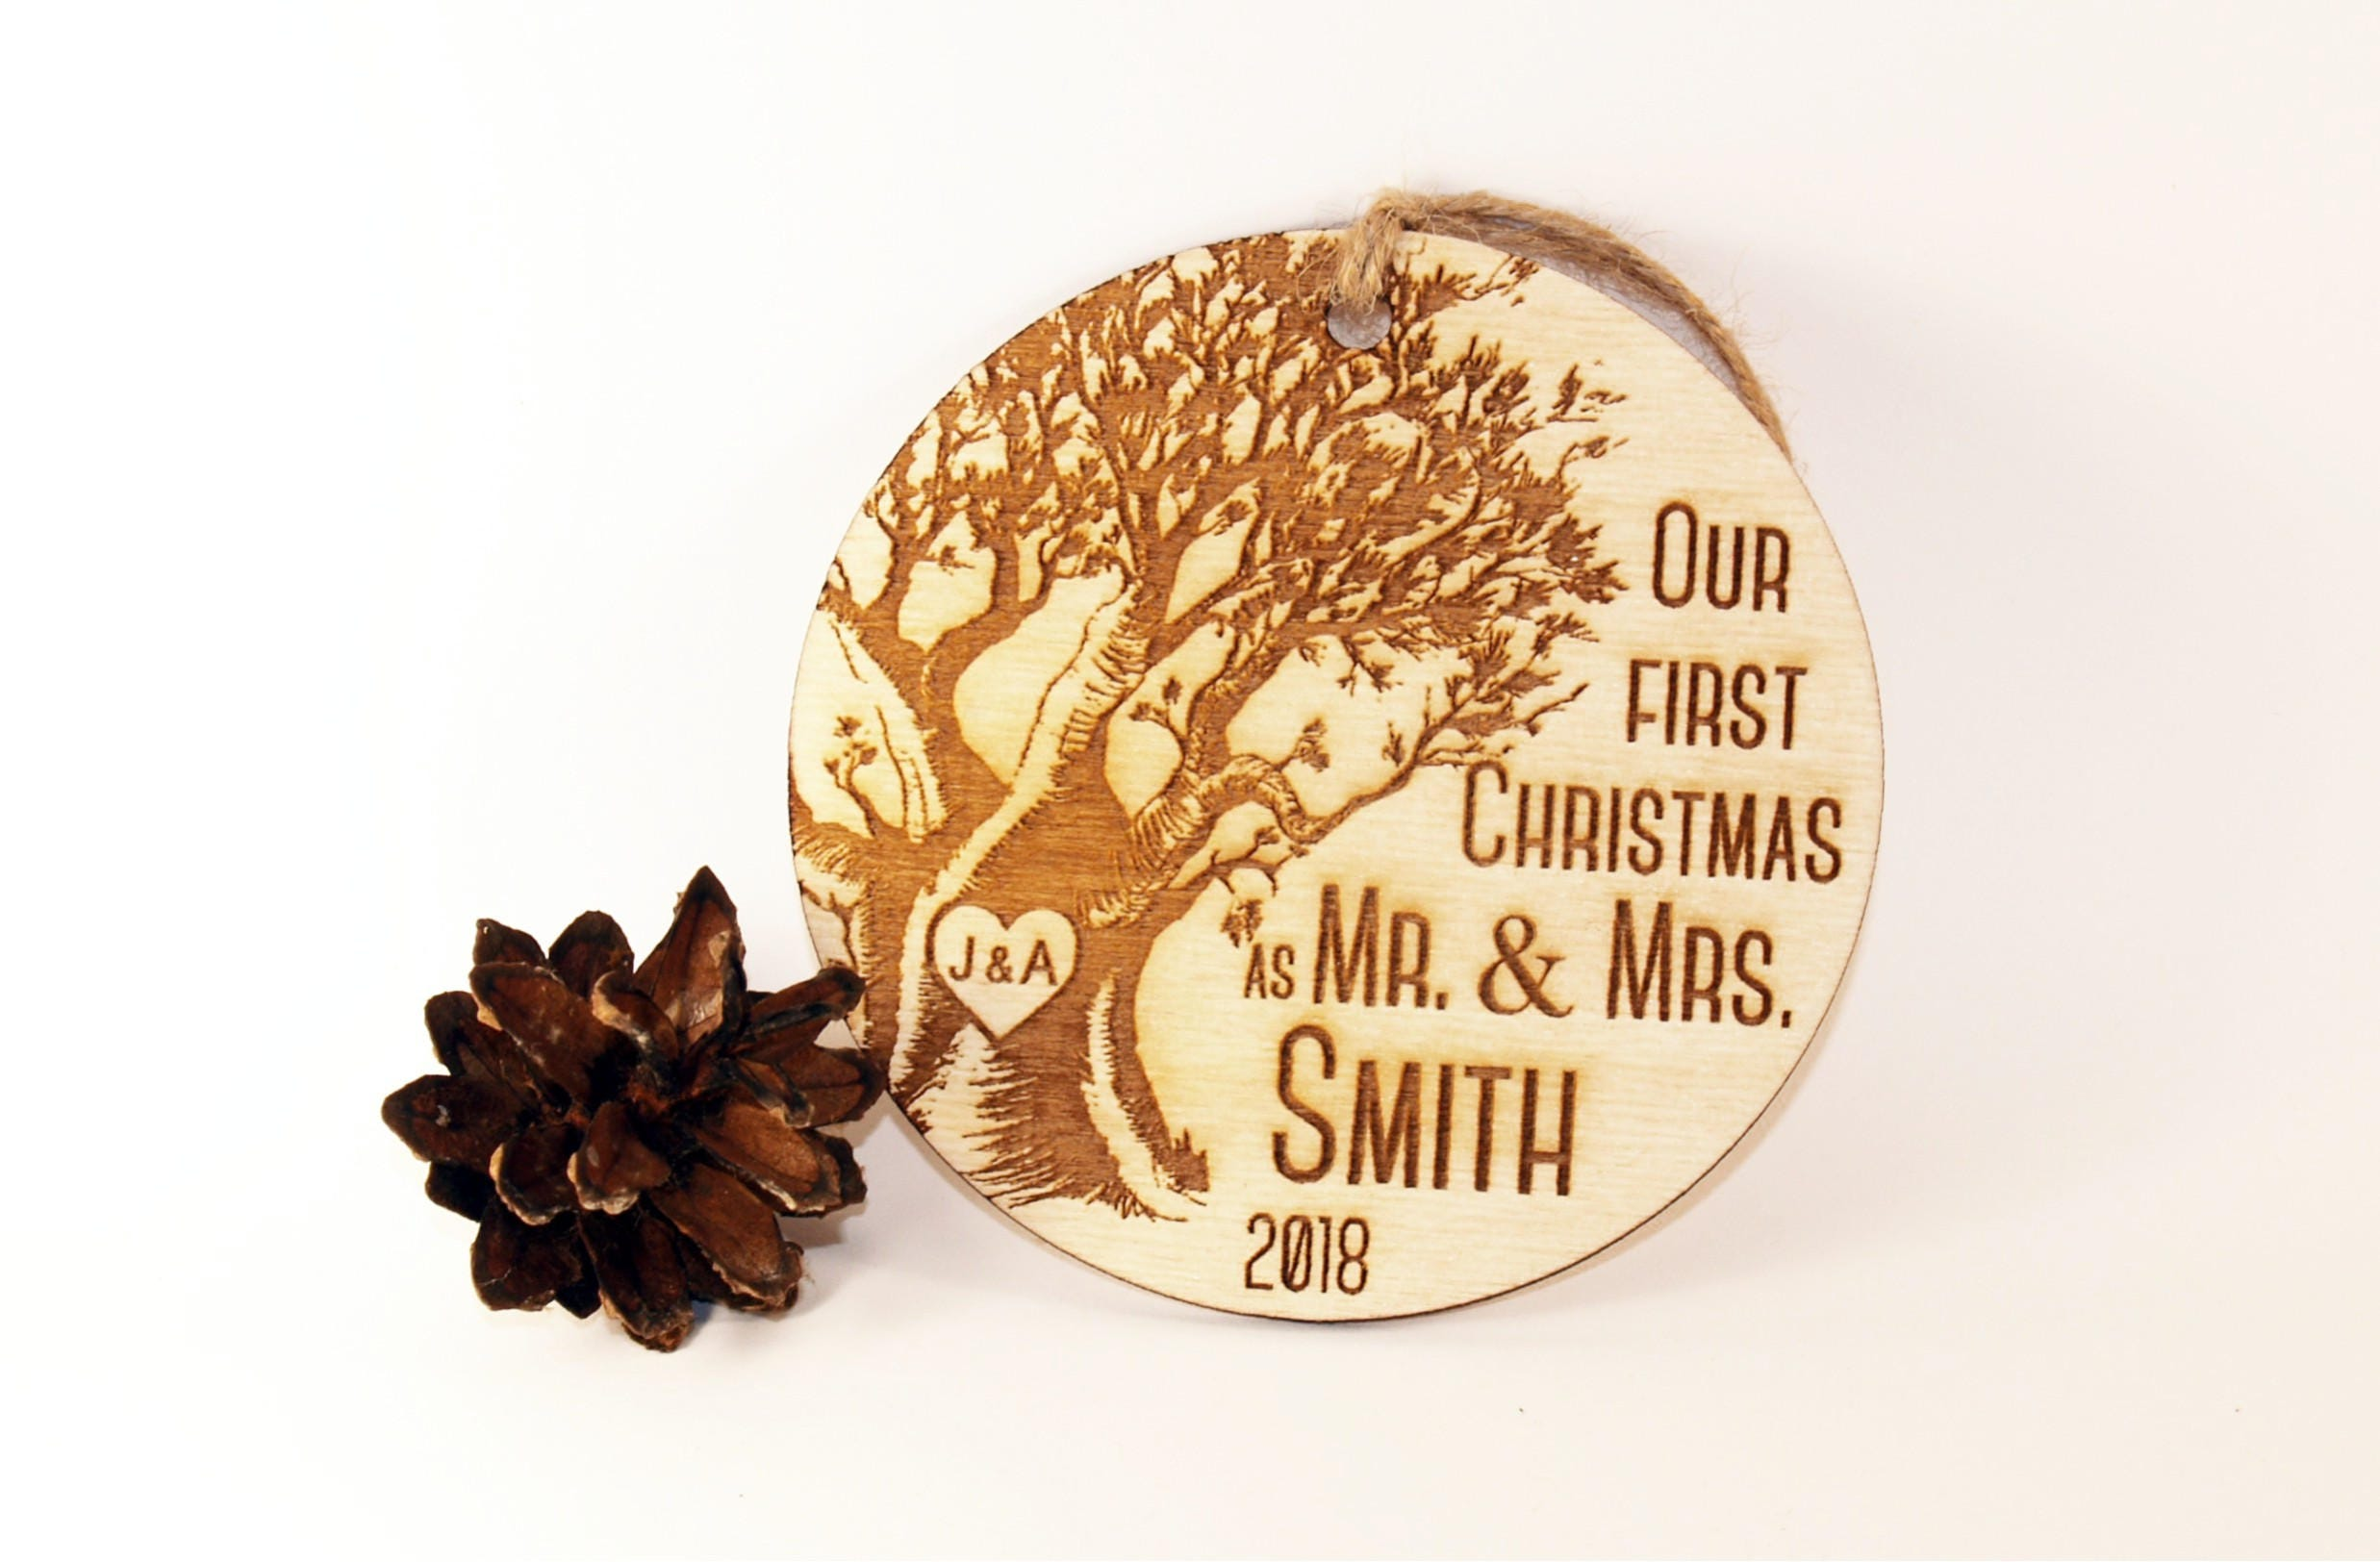 personalized our first christmas ornament just married ornament